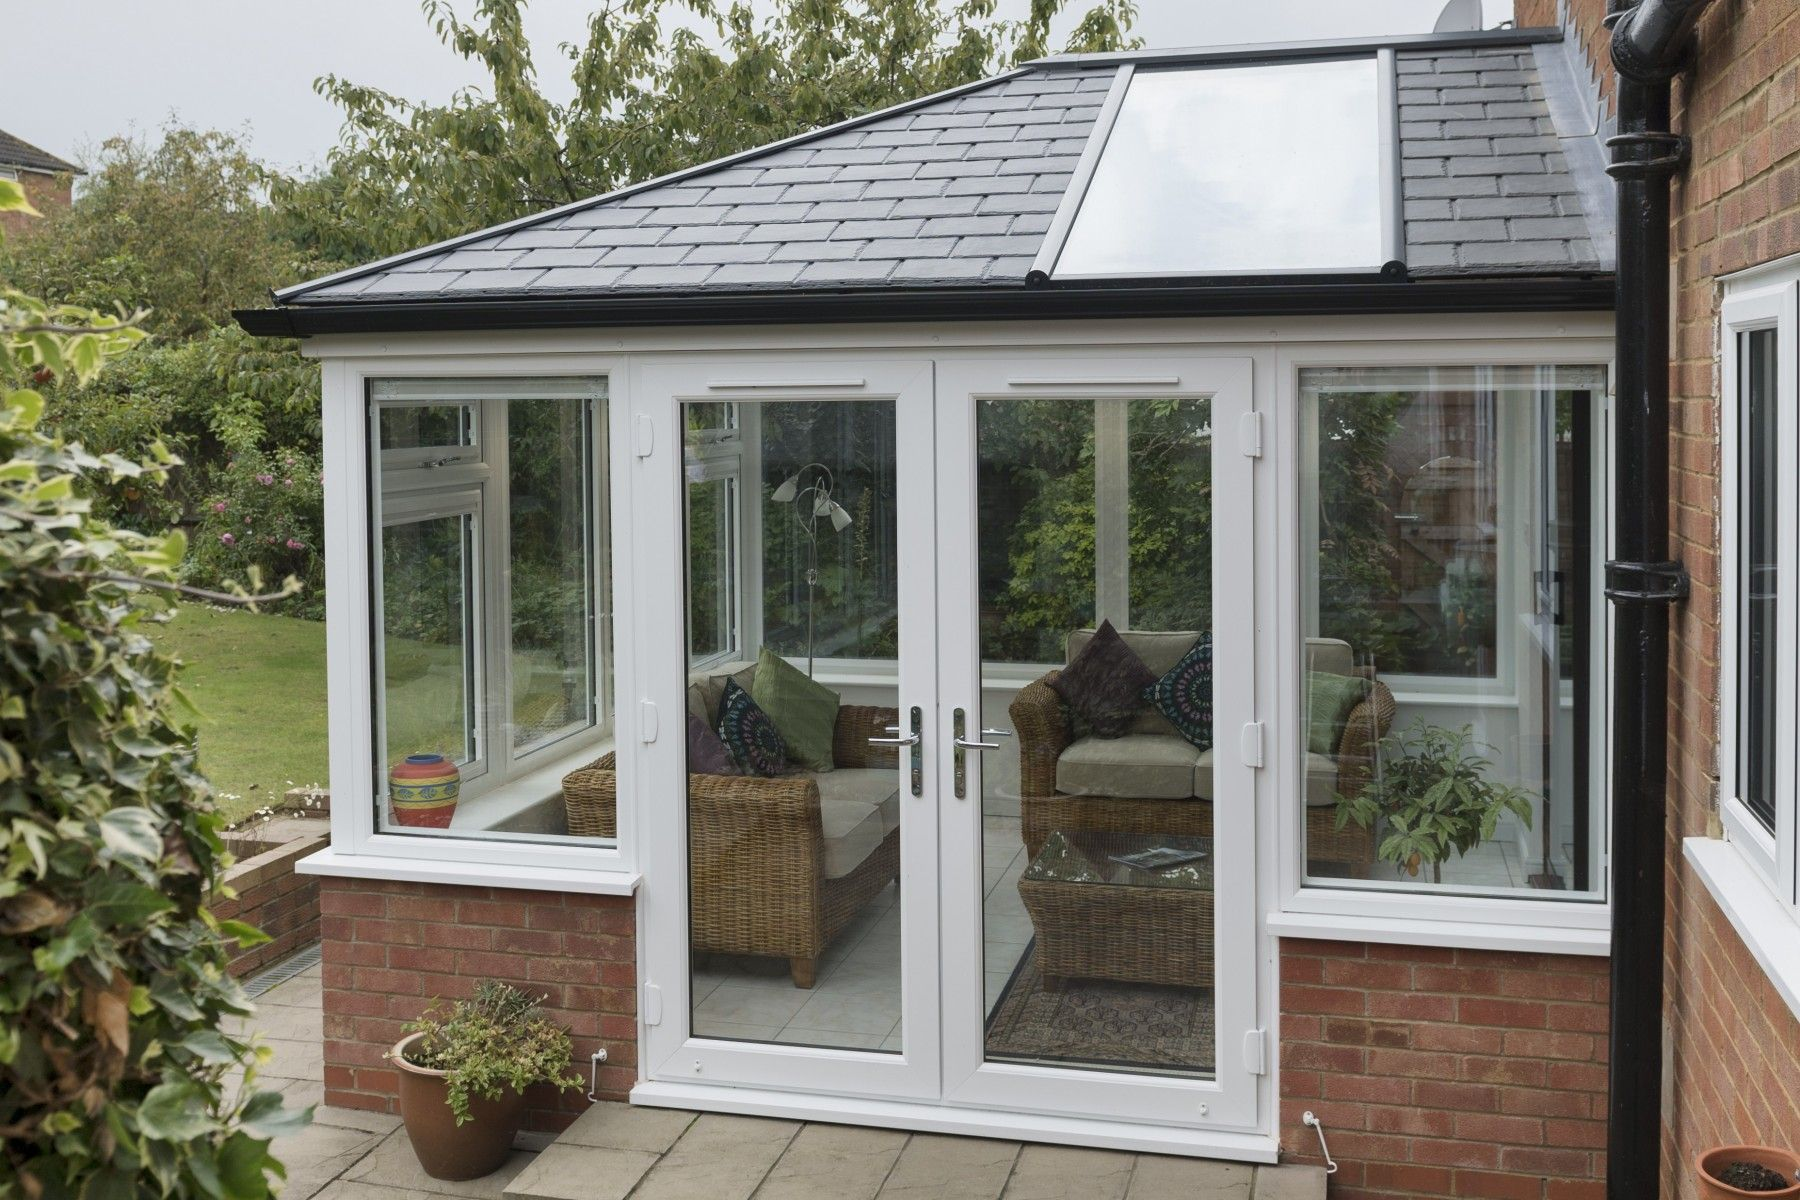 The Ultraroof Is Perfect For Those Wanting The Benefits Of A Tiled Roof While Retaining An Elemen Tiled Conservatory Roof Conservatory Roof Conservatory Design